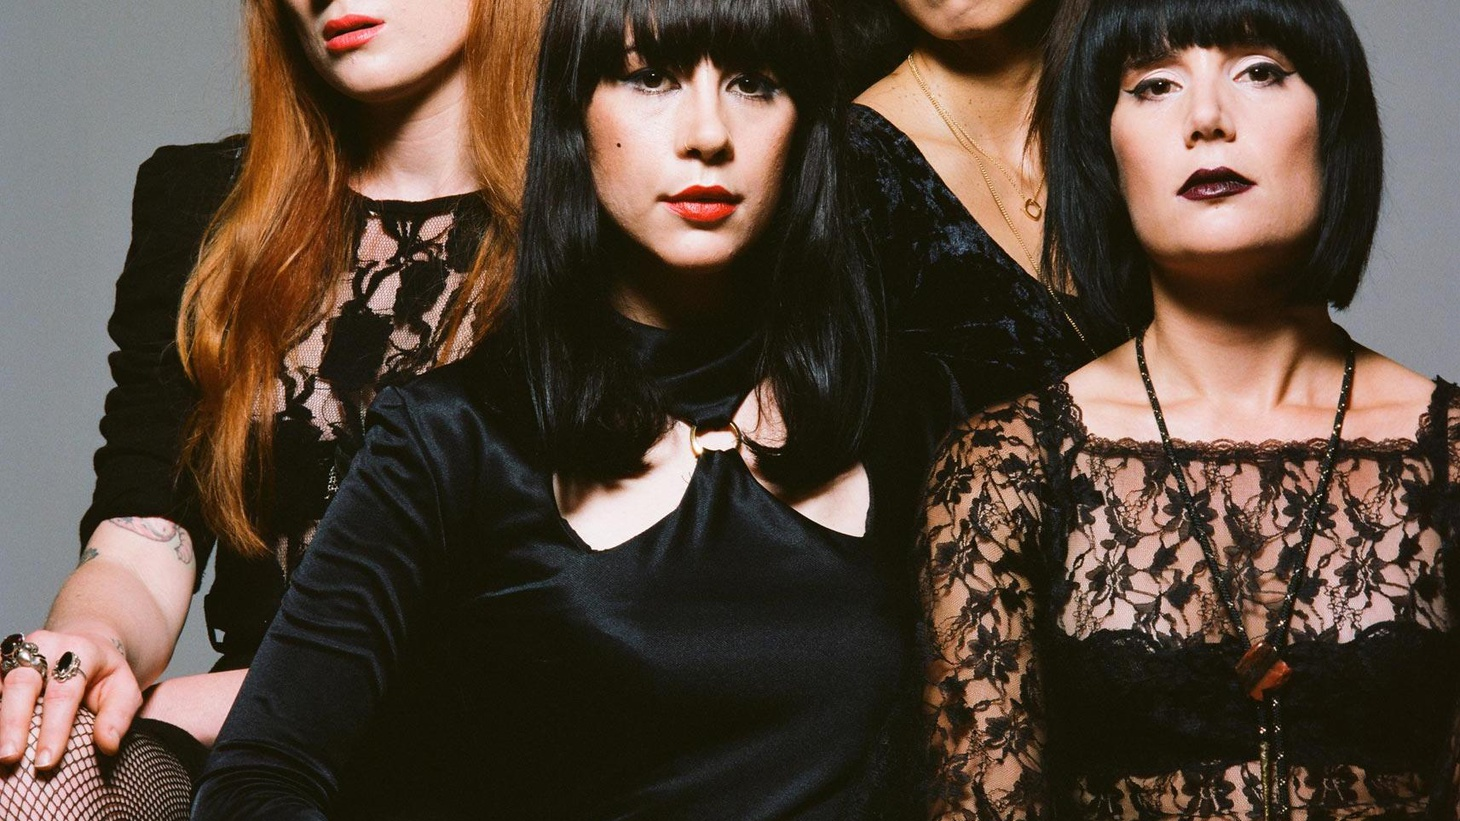 Southern California's Dum Dum Girls recall the echo-drenched sound of 60's girl bands, but are inspired by a wide range of female artists....